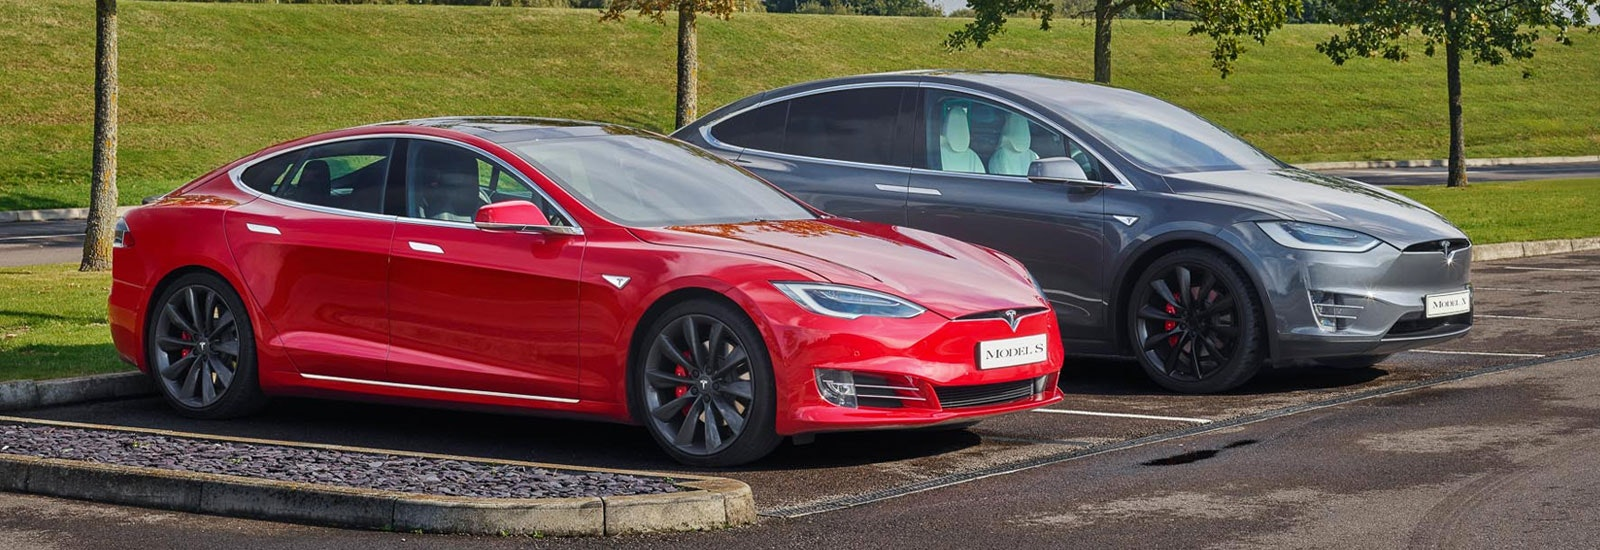 Red Tesla Model S and grey Tesla Model X parked, viewed from the front